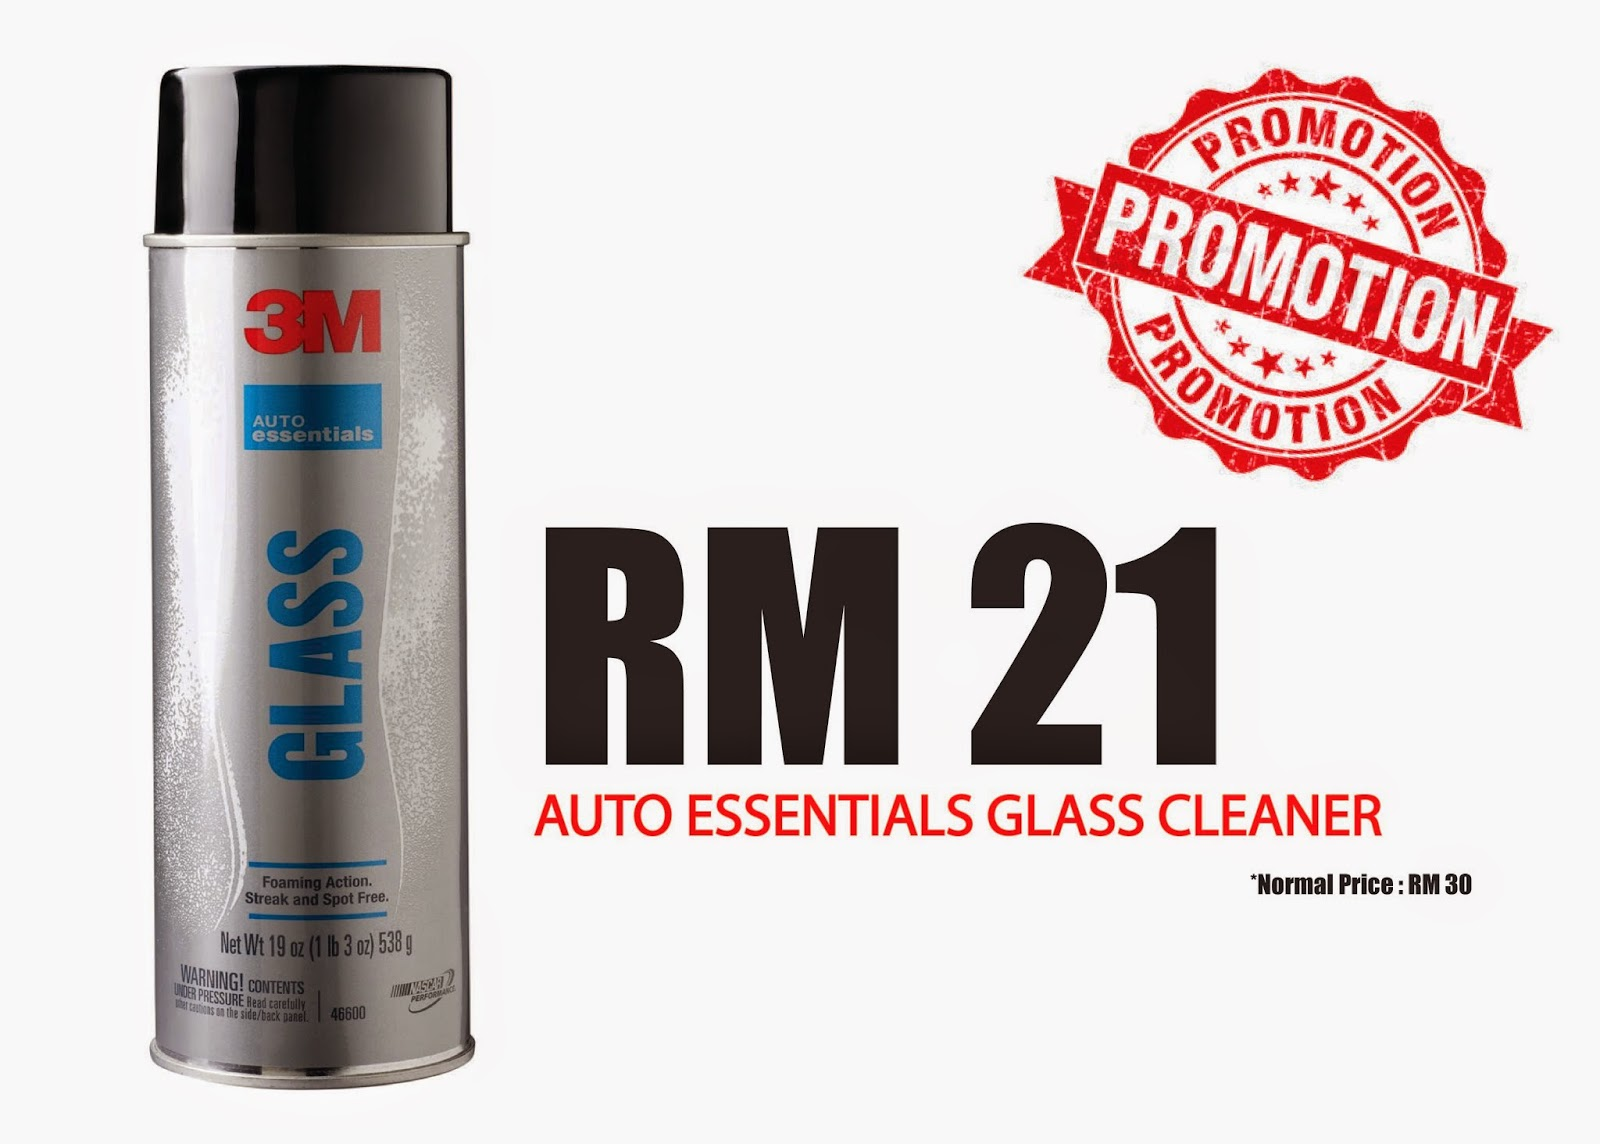 3M Auto Essential - Glass Cleaner